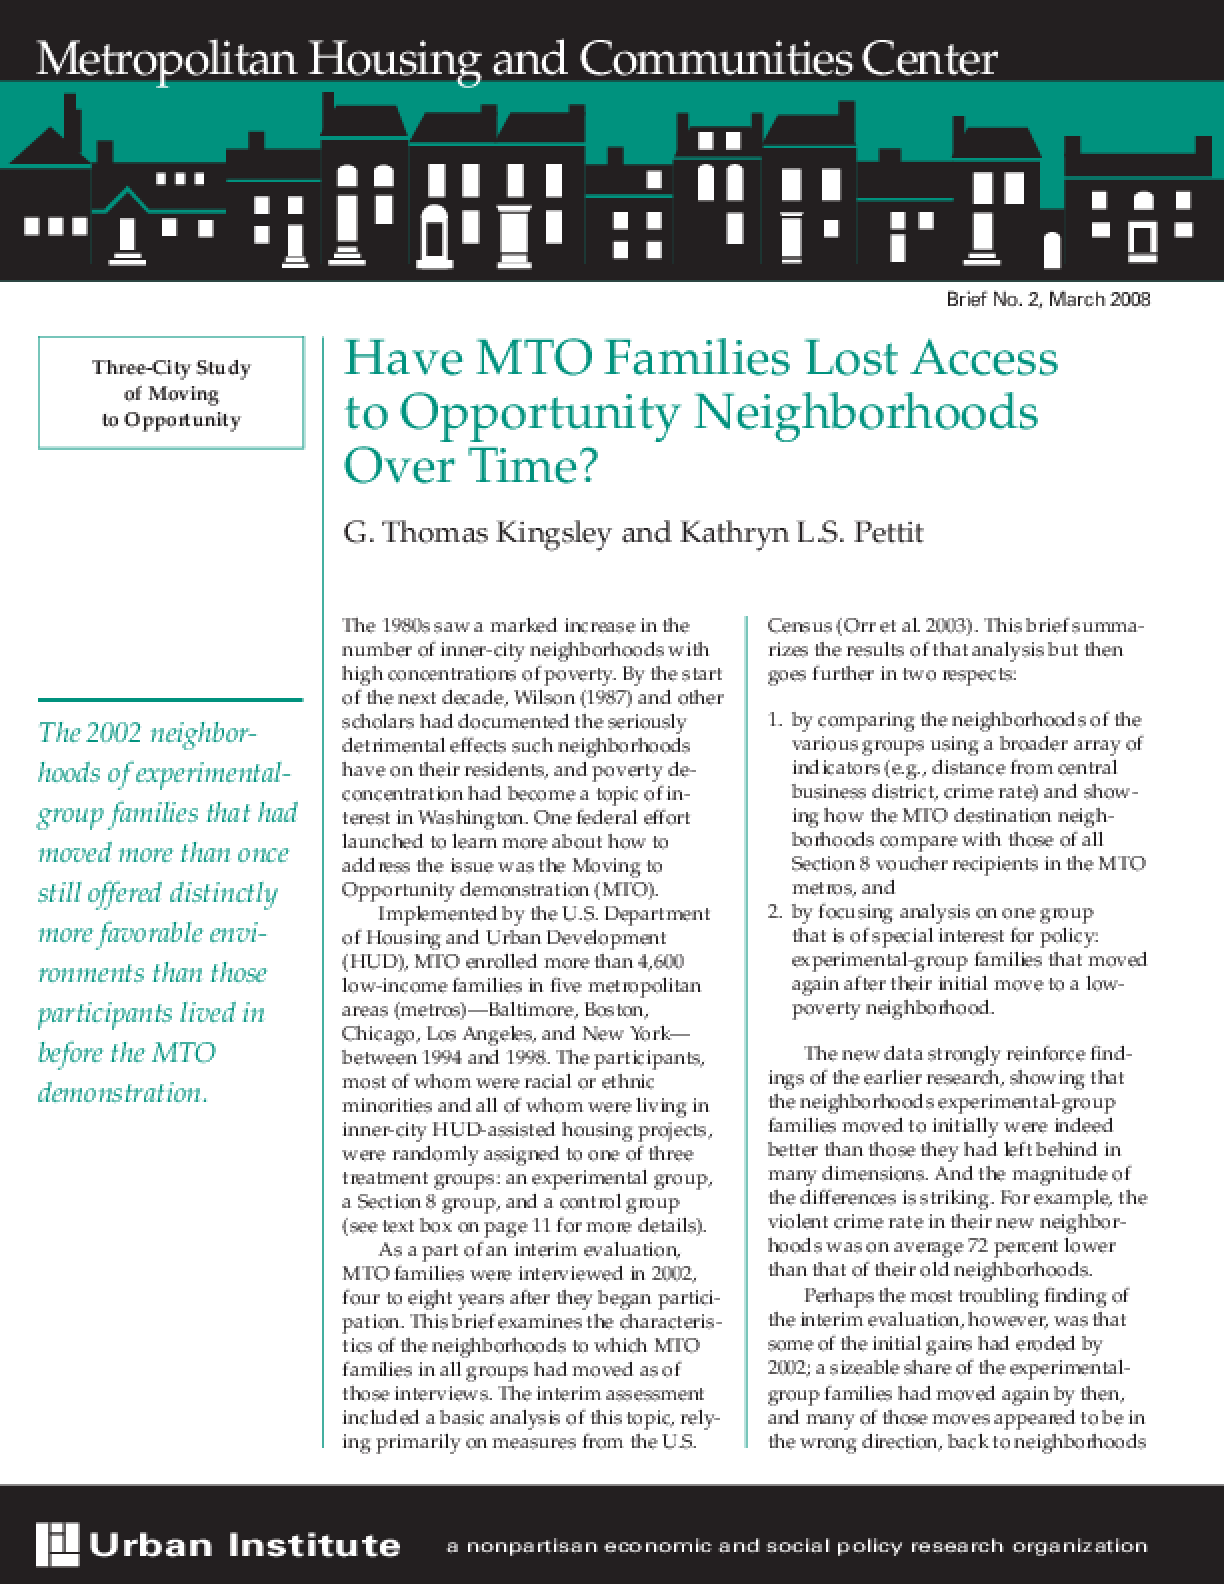 Have MTO Families Lost Access to Opportunity Neighborhoods Over Time?